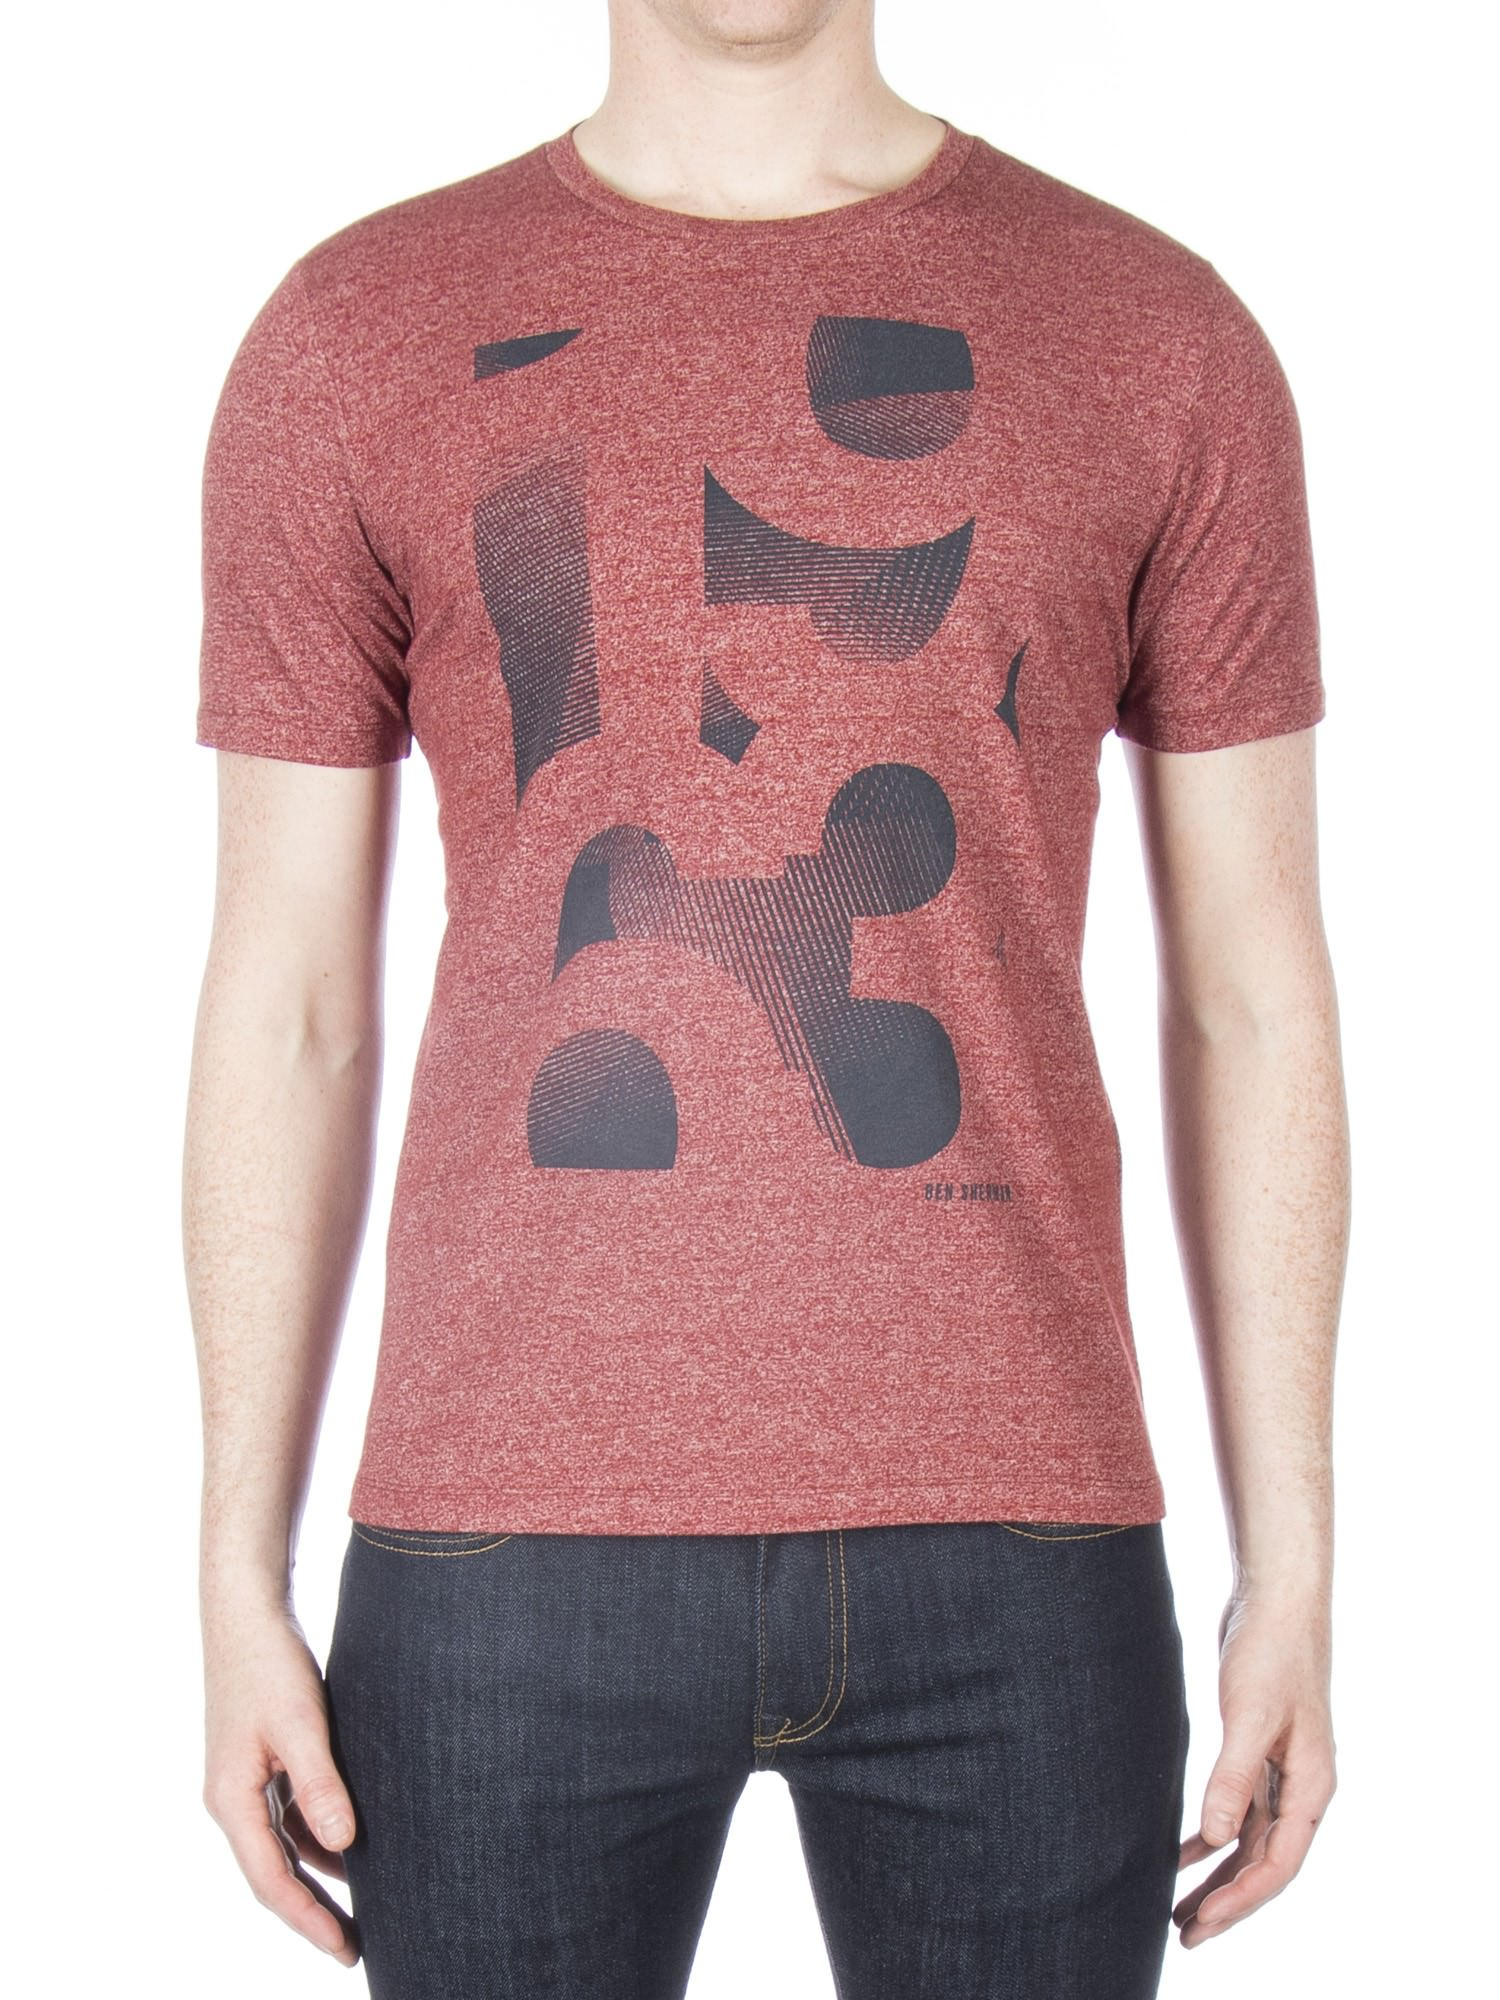 Ben Sherman Rust 1963 Grindle Print T-Shirt